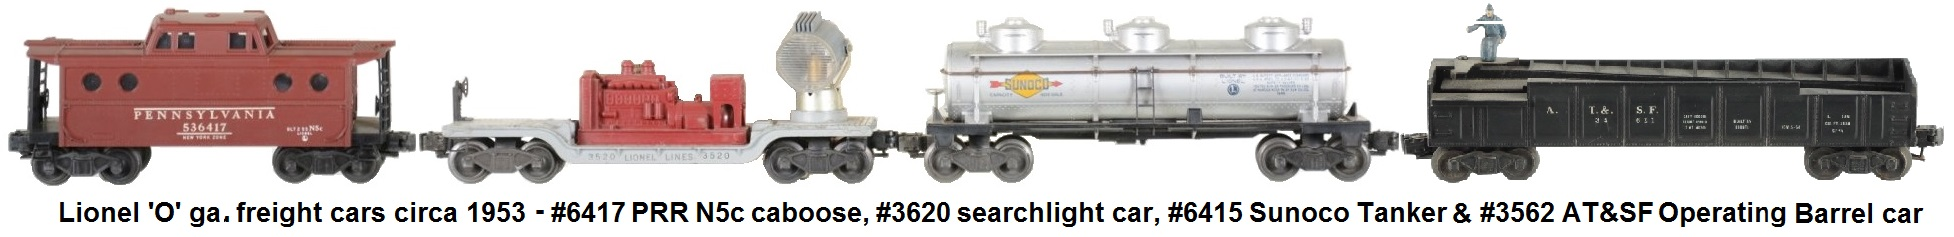 Lionel 'O' gauge freight cars circa 1953 with #6417 PRR N5c caboose, #3620 operating searchlight car, #6415 Sunoco tank car, and #2562-1 Operating Barrel Car